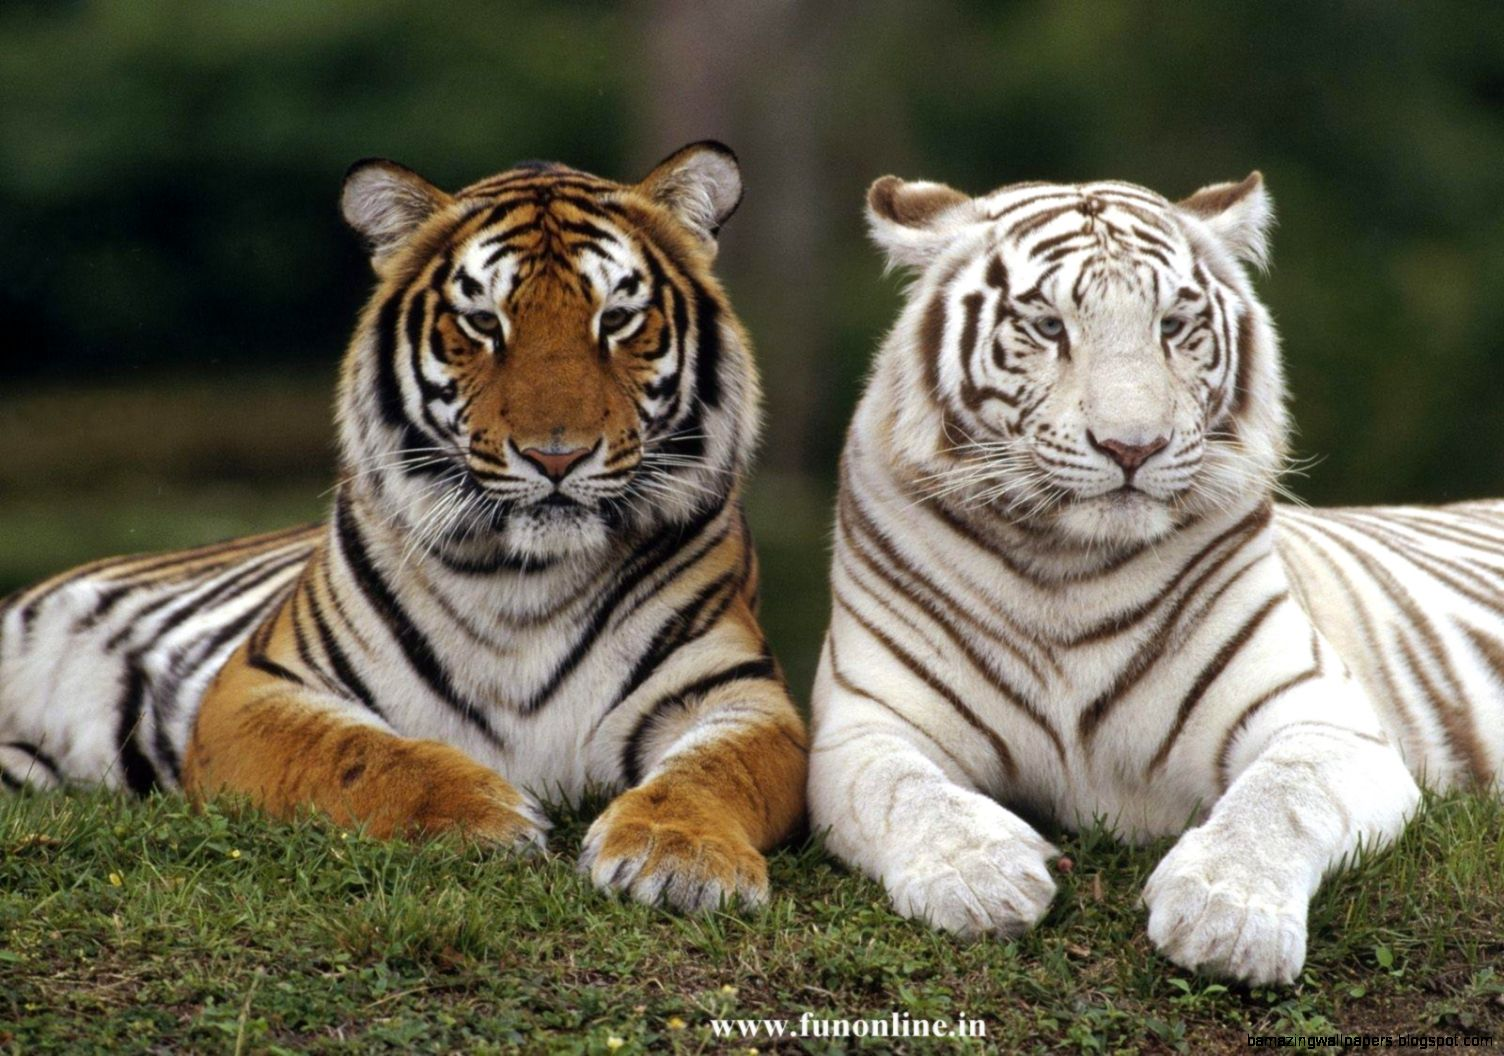 Tigers Wallpapers White Tiger Wallpapers Download Tigers Wallpapers